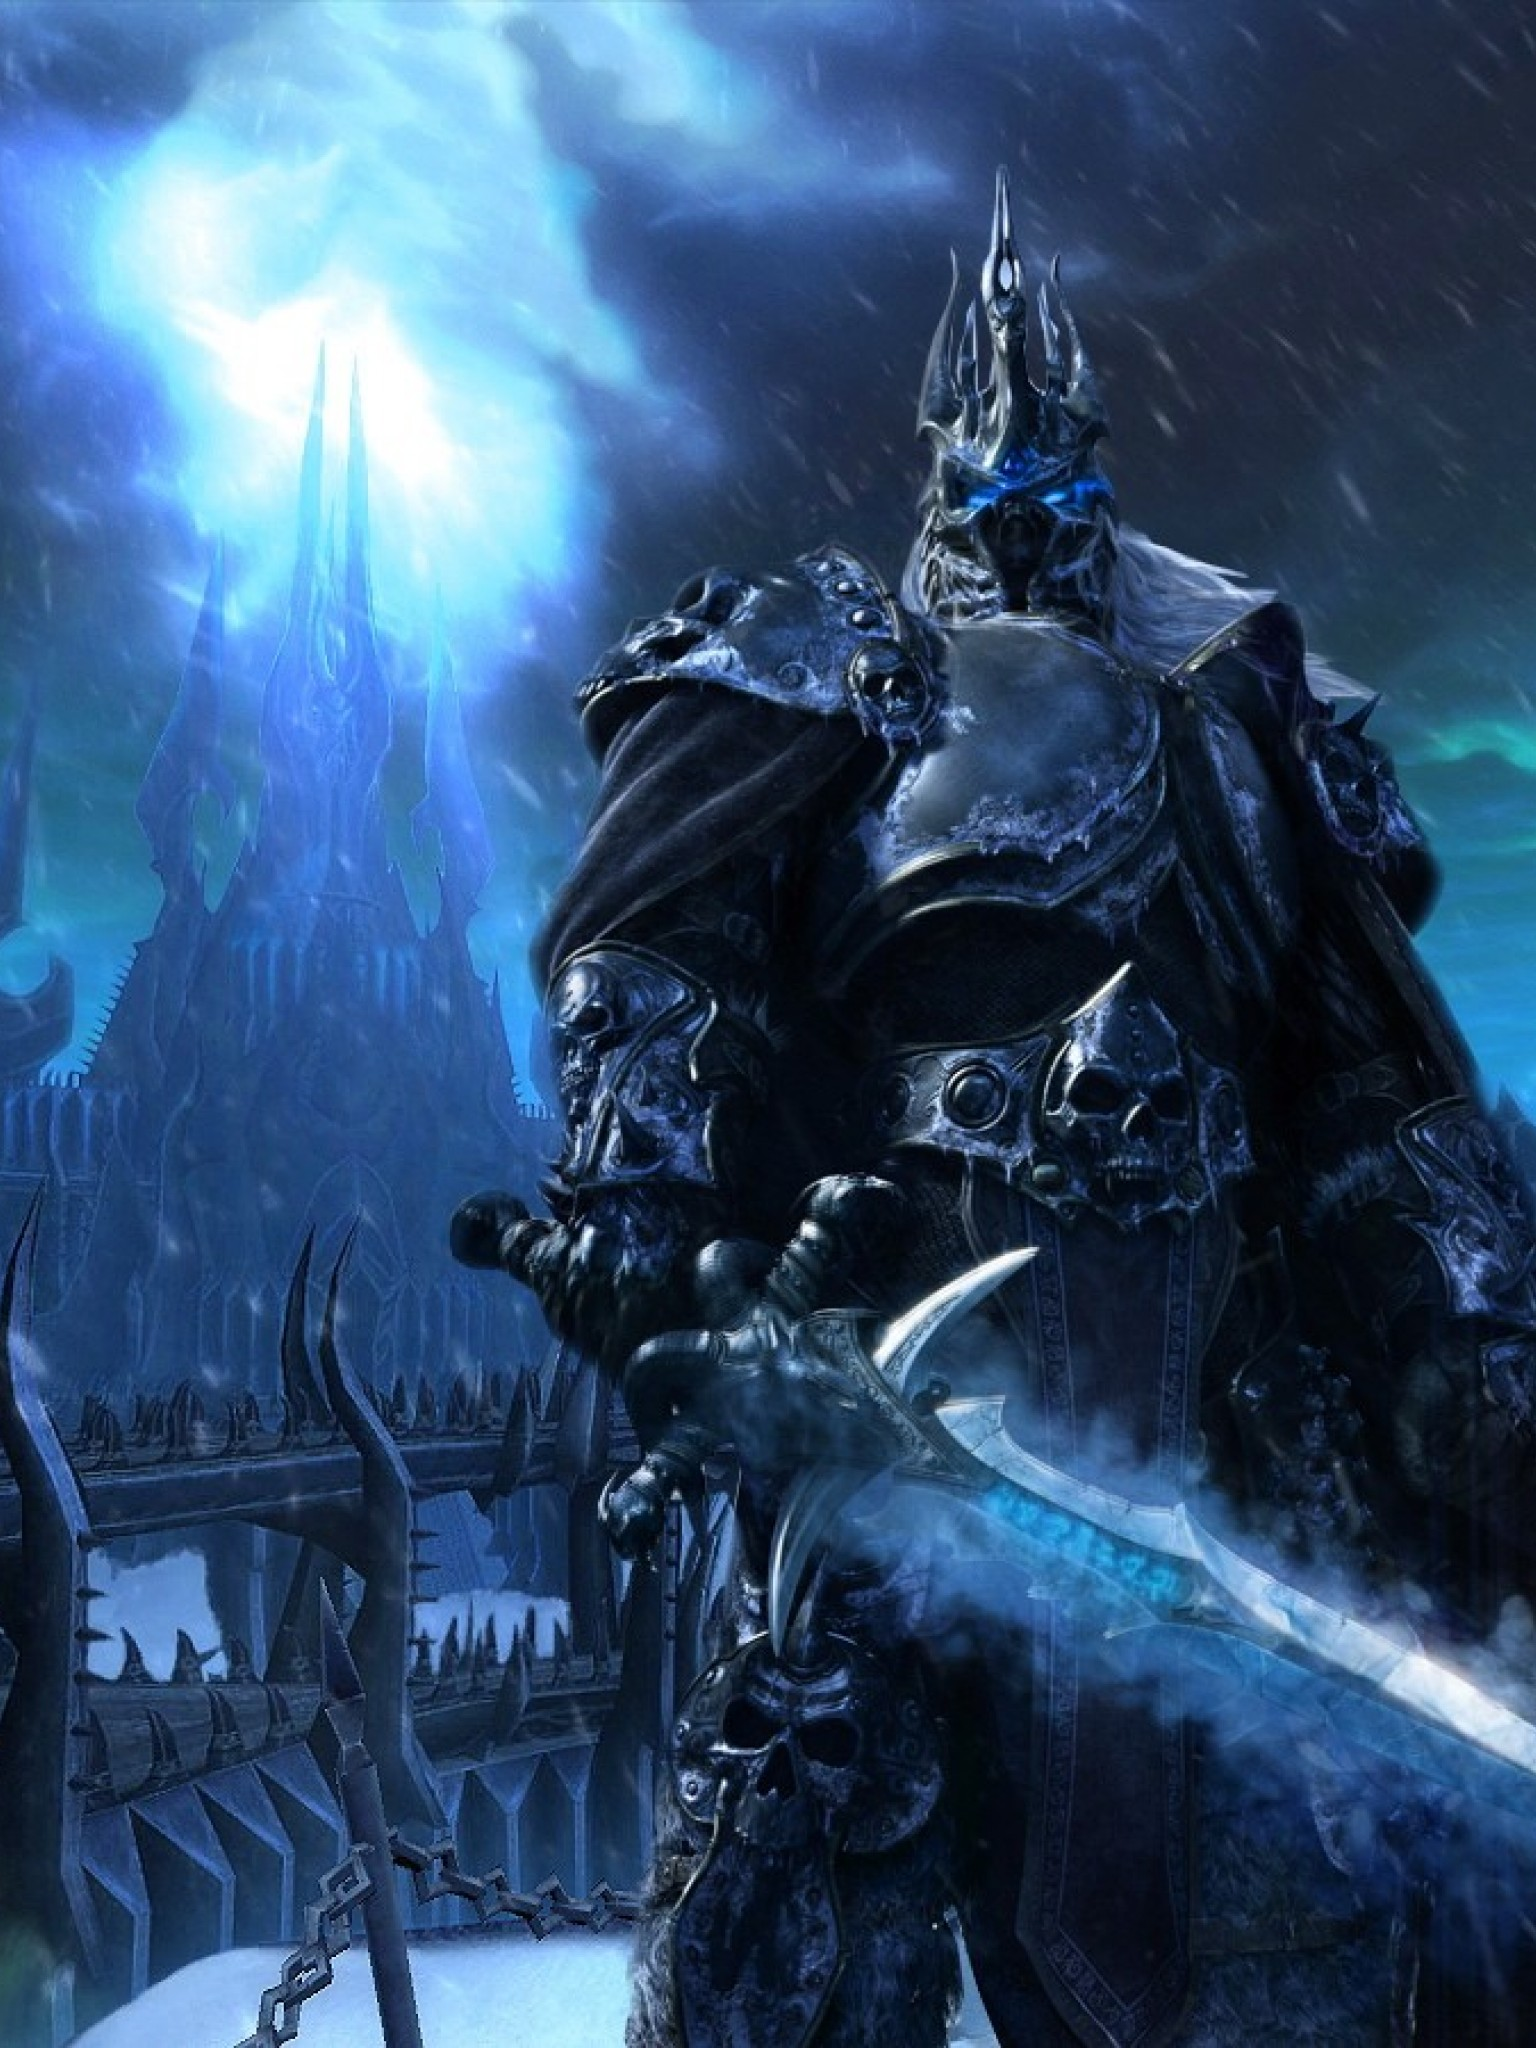 World Of Warcraft Wrath Of The Lich King Hd Wallpaper Retina Ipad